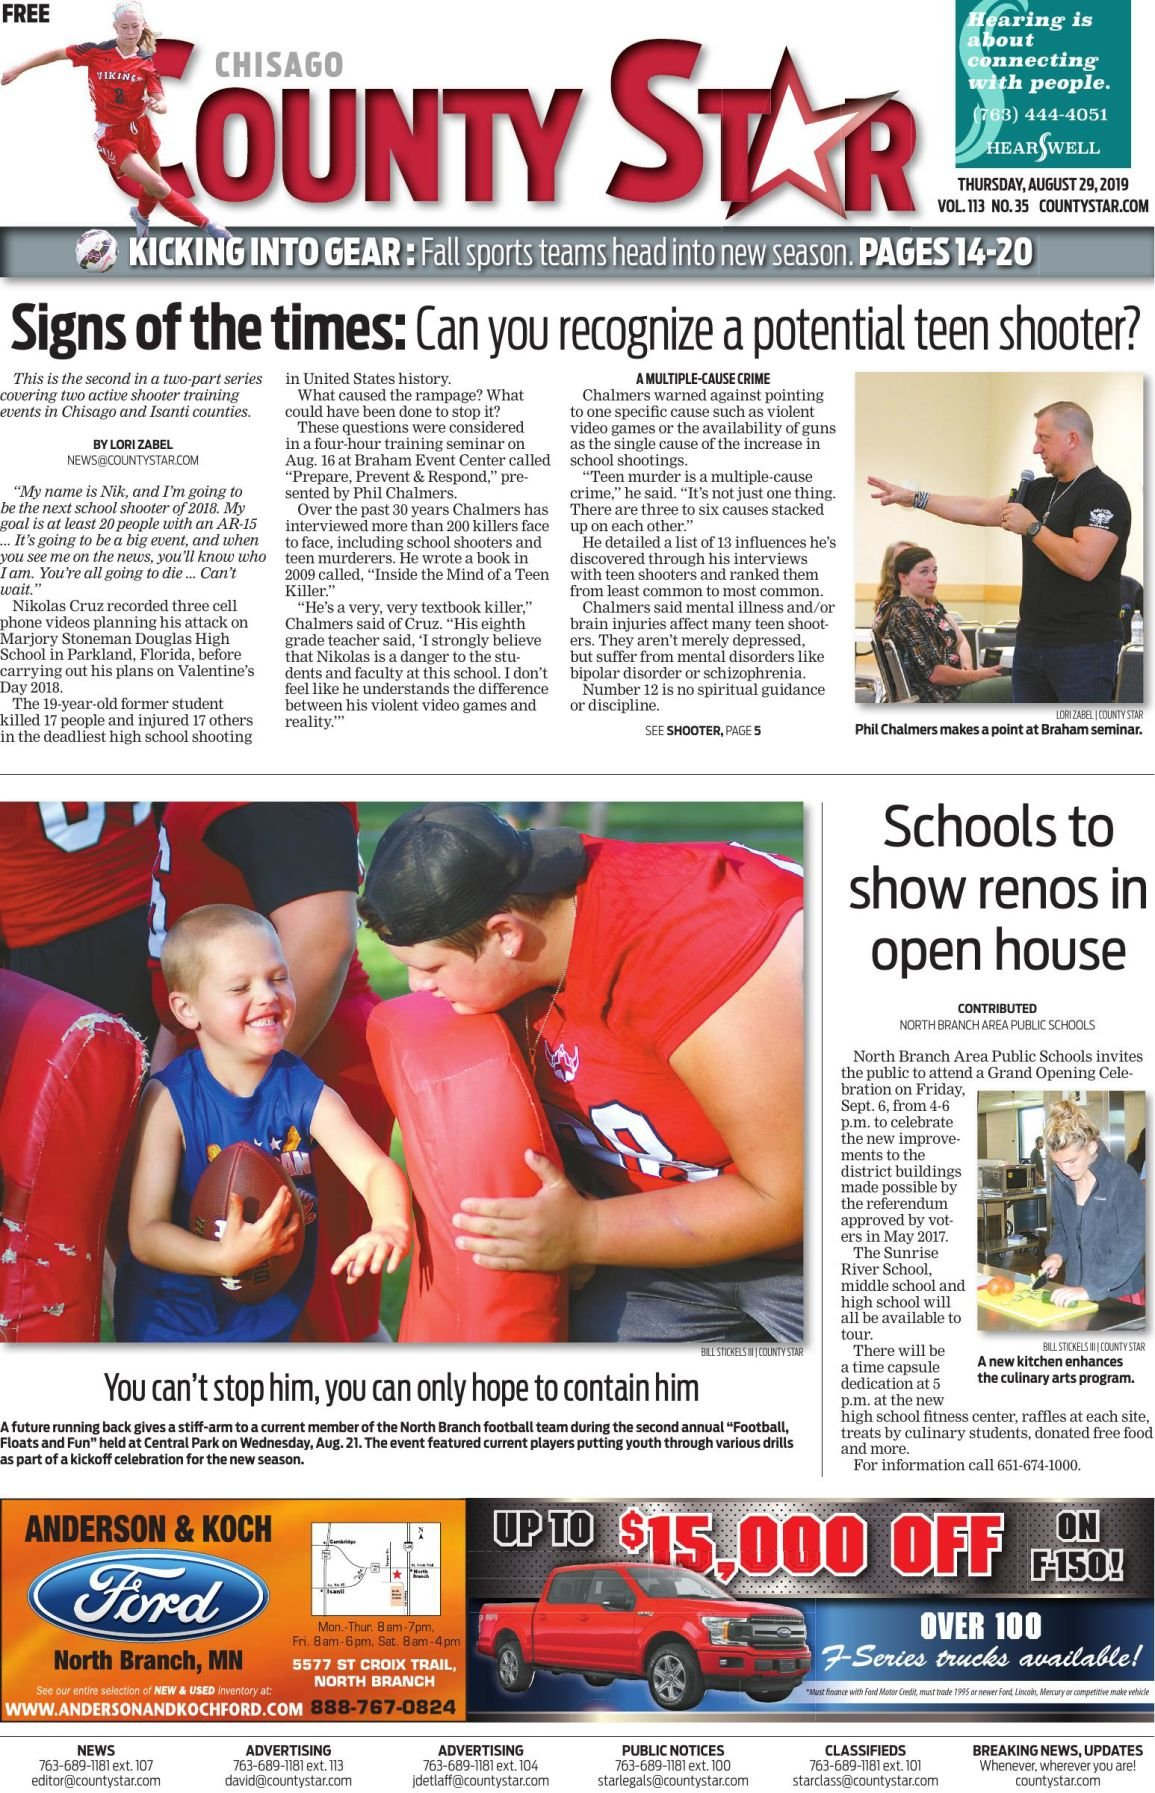 Chisago County Star August 29, 2019 e-edition